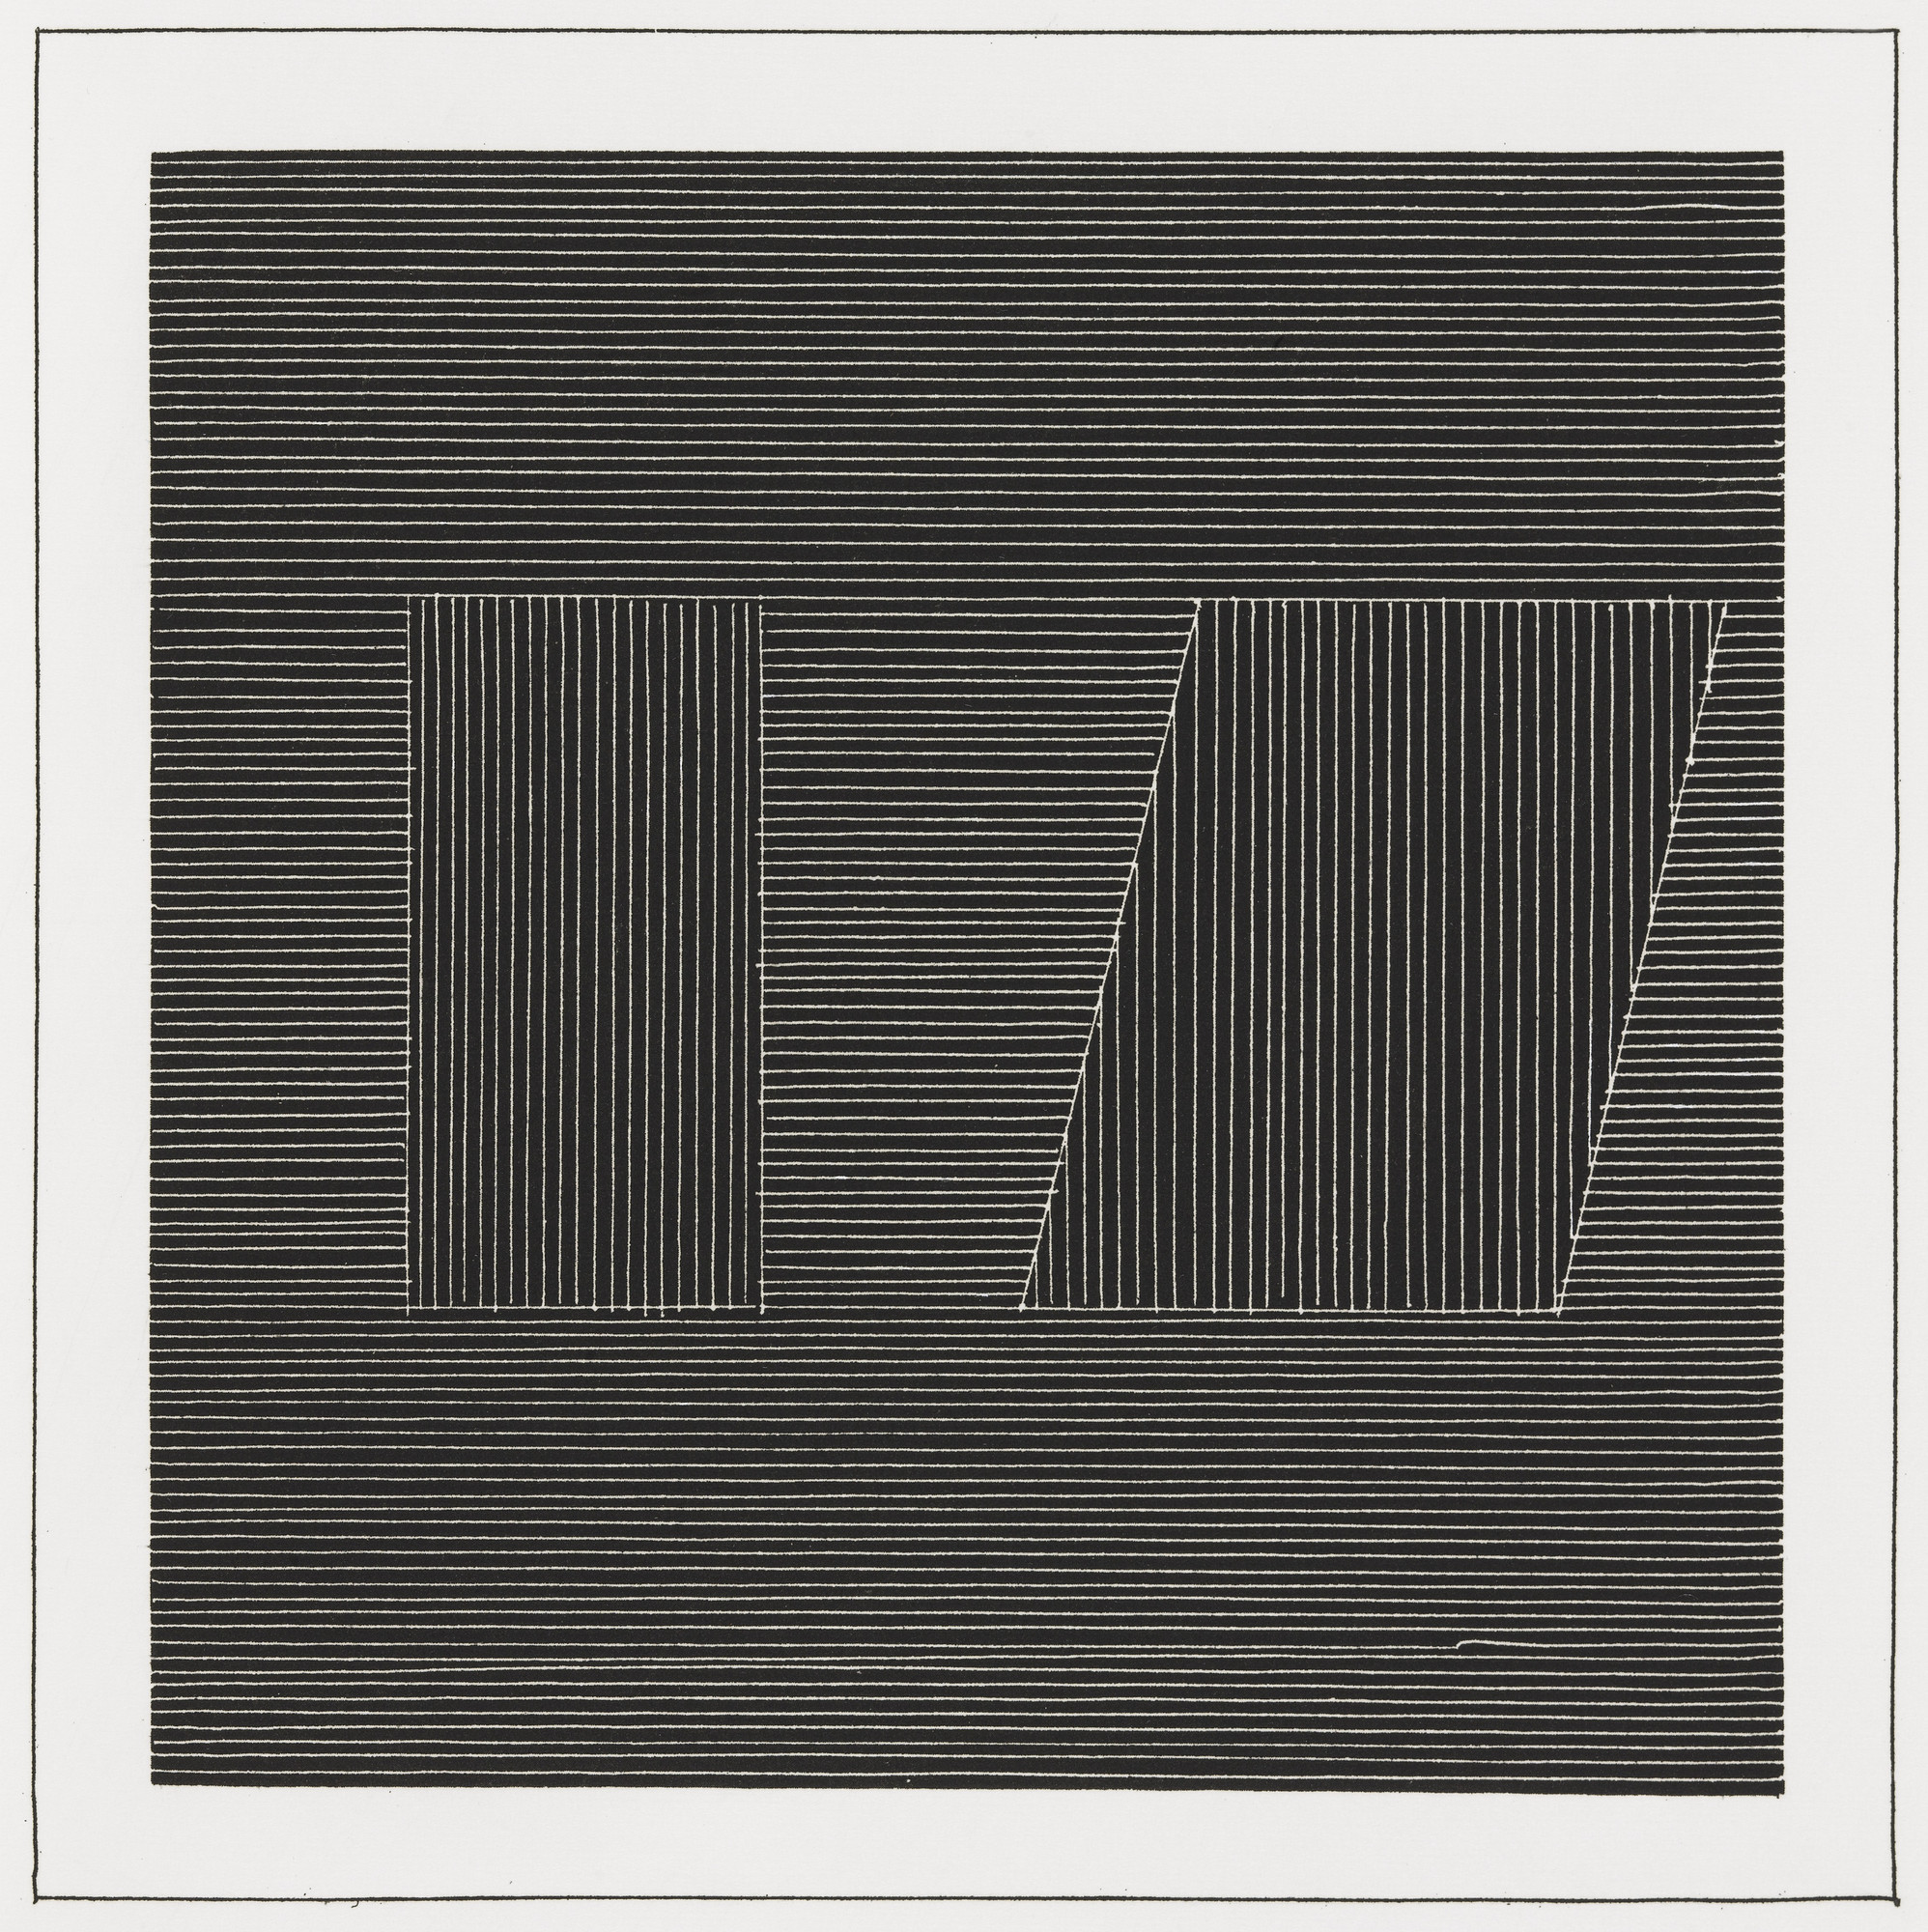 Sol LeWitt. Plate (folio 21) from Six Geometric Figures and All Their Combinations, Volume I. 1980